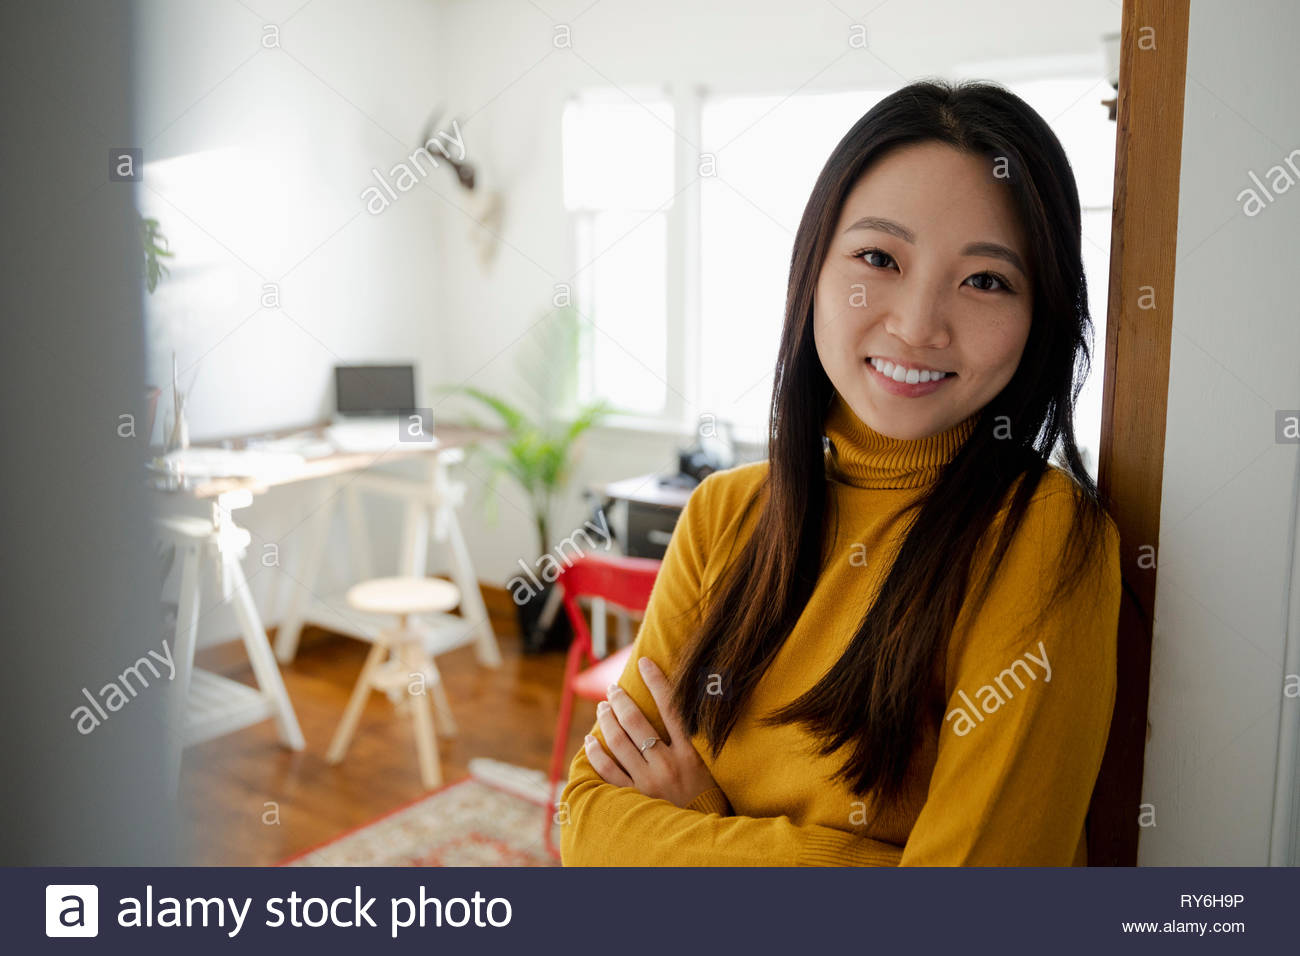 Portrait smiling, confident young woman standing in home office doorway - Stock Image